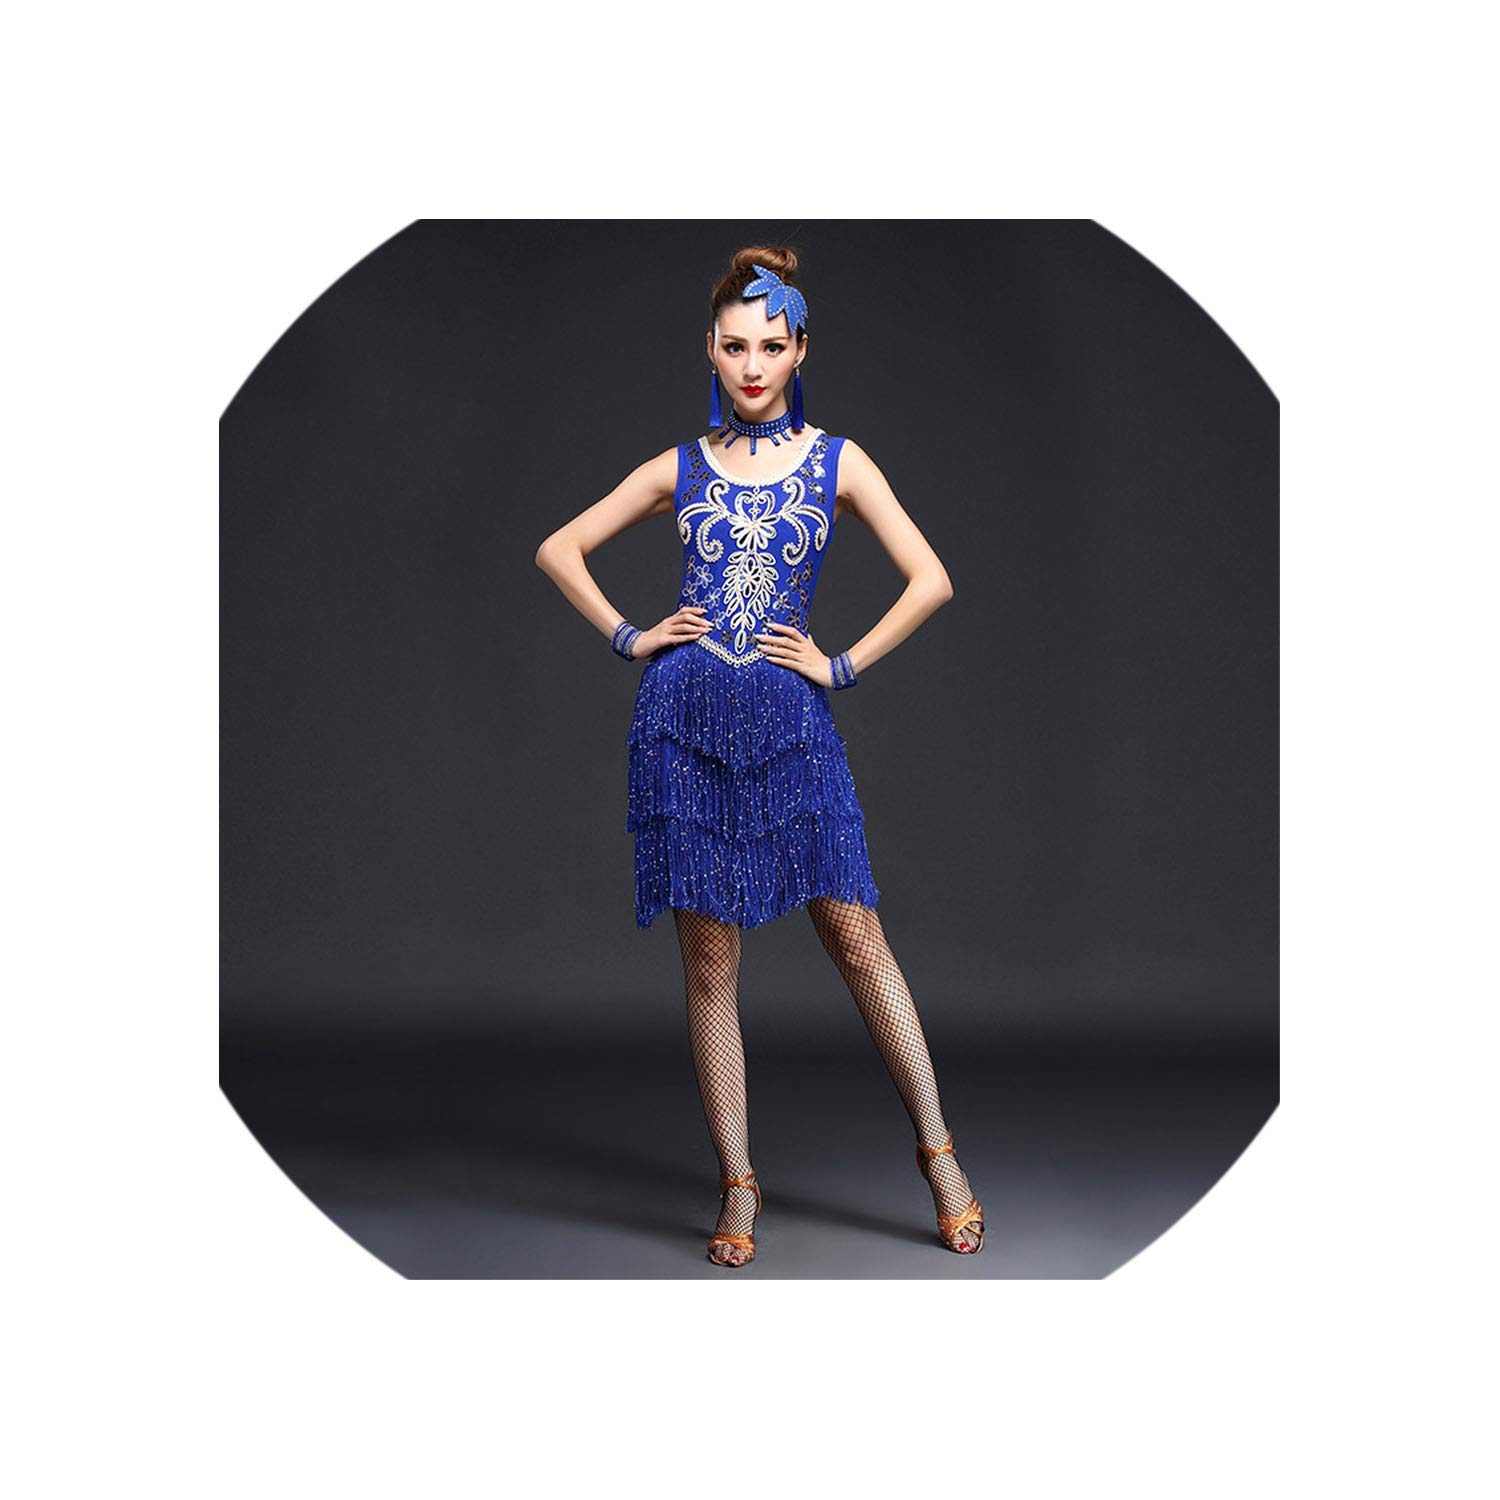 Women Girls Sequin Fringe Tassel Skirt Latin Tango Ballroom Salsa Dance Dress,Blue,L by Colourful Day Dance Dress